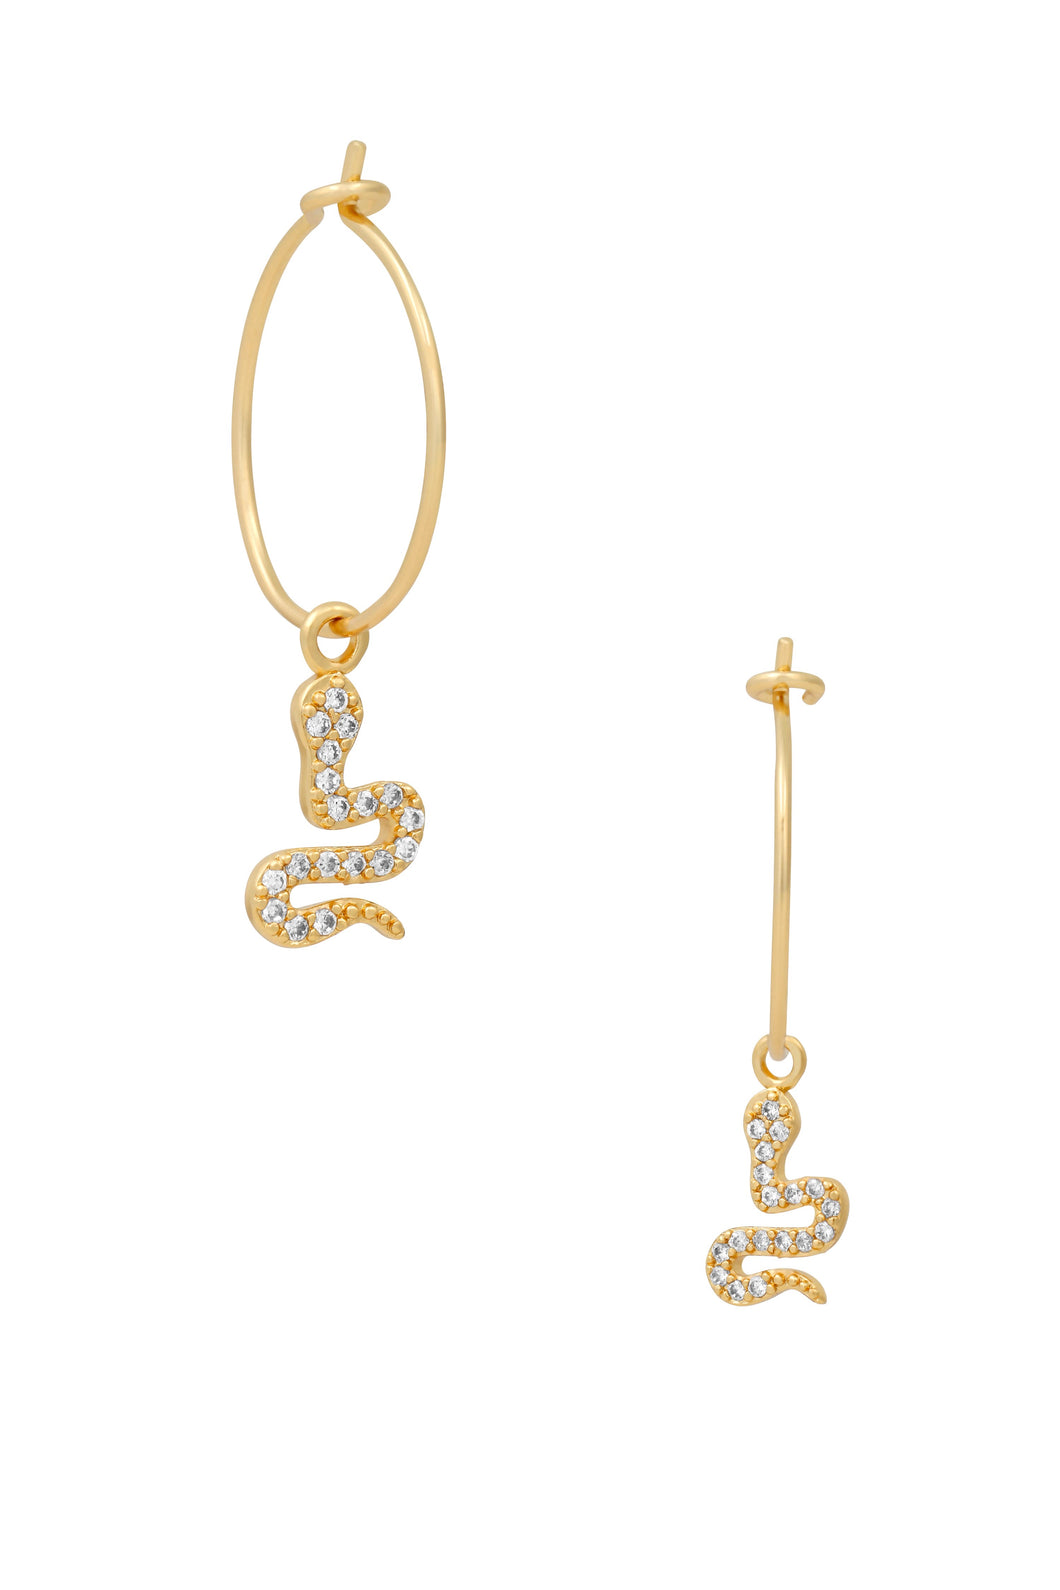 Petite charm hoop earrings. An extra thick layer of 14k gold plated with brass base. Sterling silver hoop base and cubic zirconia accents. Approximately 15mm hoop. Charm measures 13mm.  What we love about this style: the subtle amount of sparkle